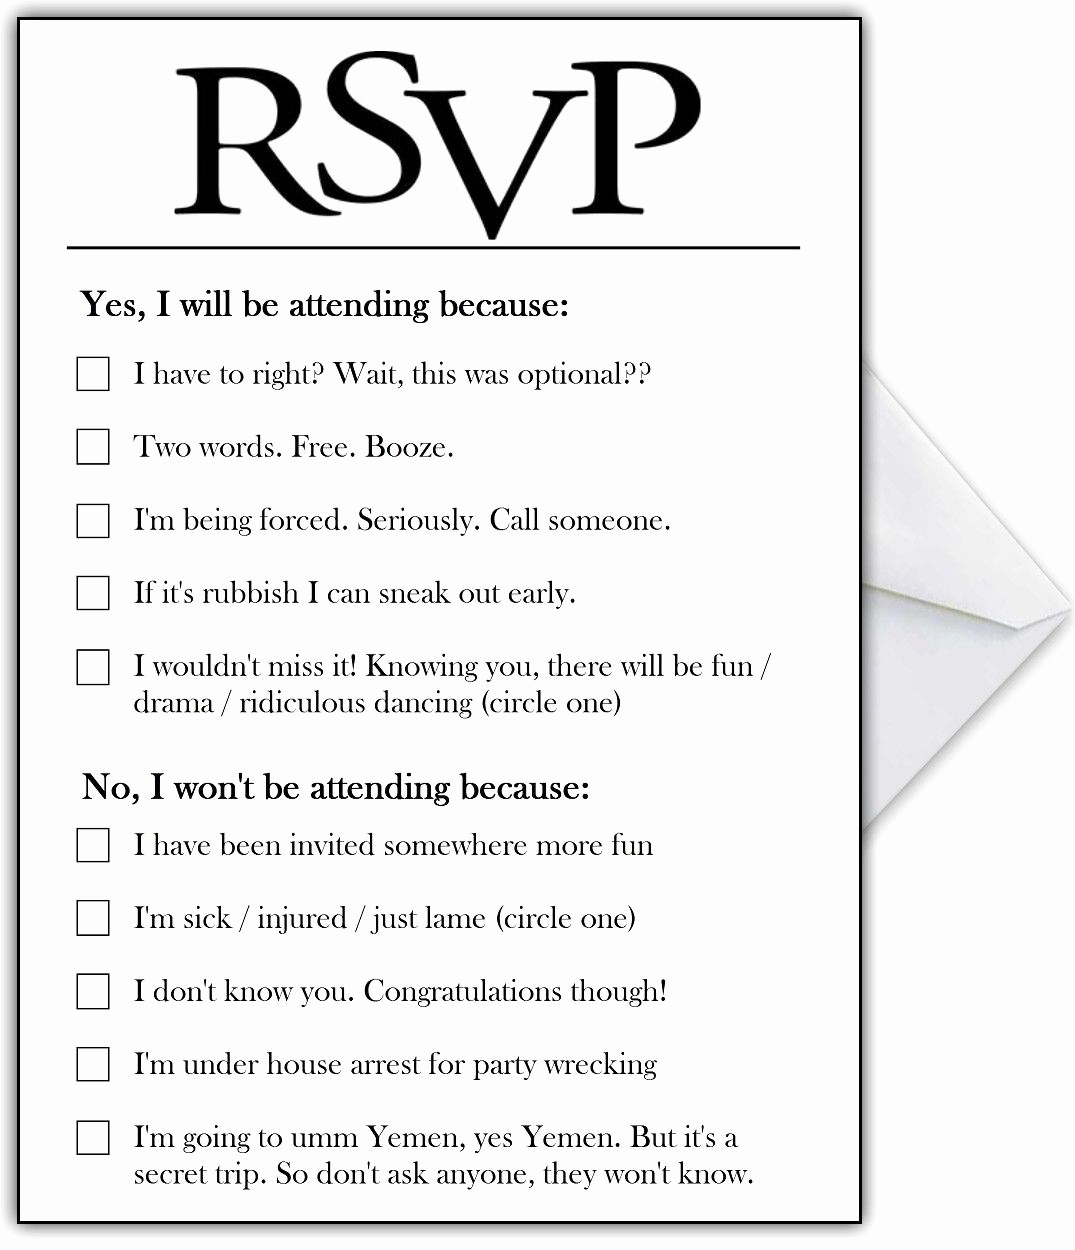 Funny Engagement Party Invitation Wording Best Of Rsvp Card with Hilarious Options or Add Your Own Funny